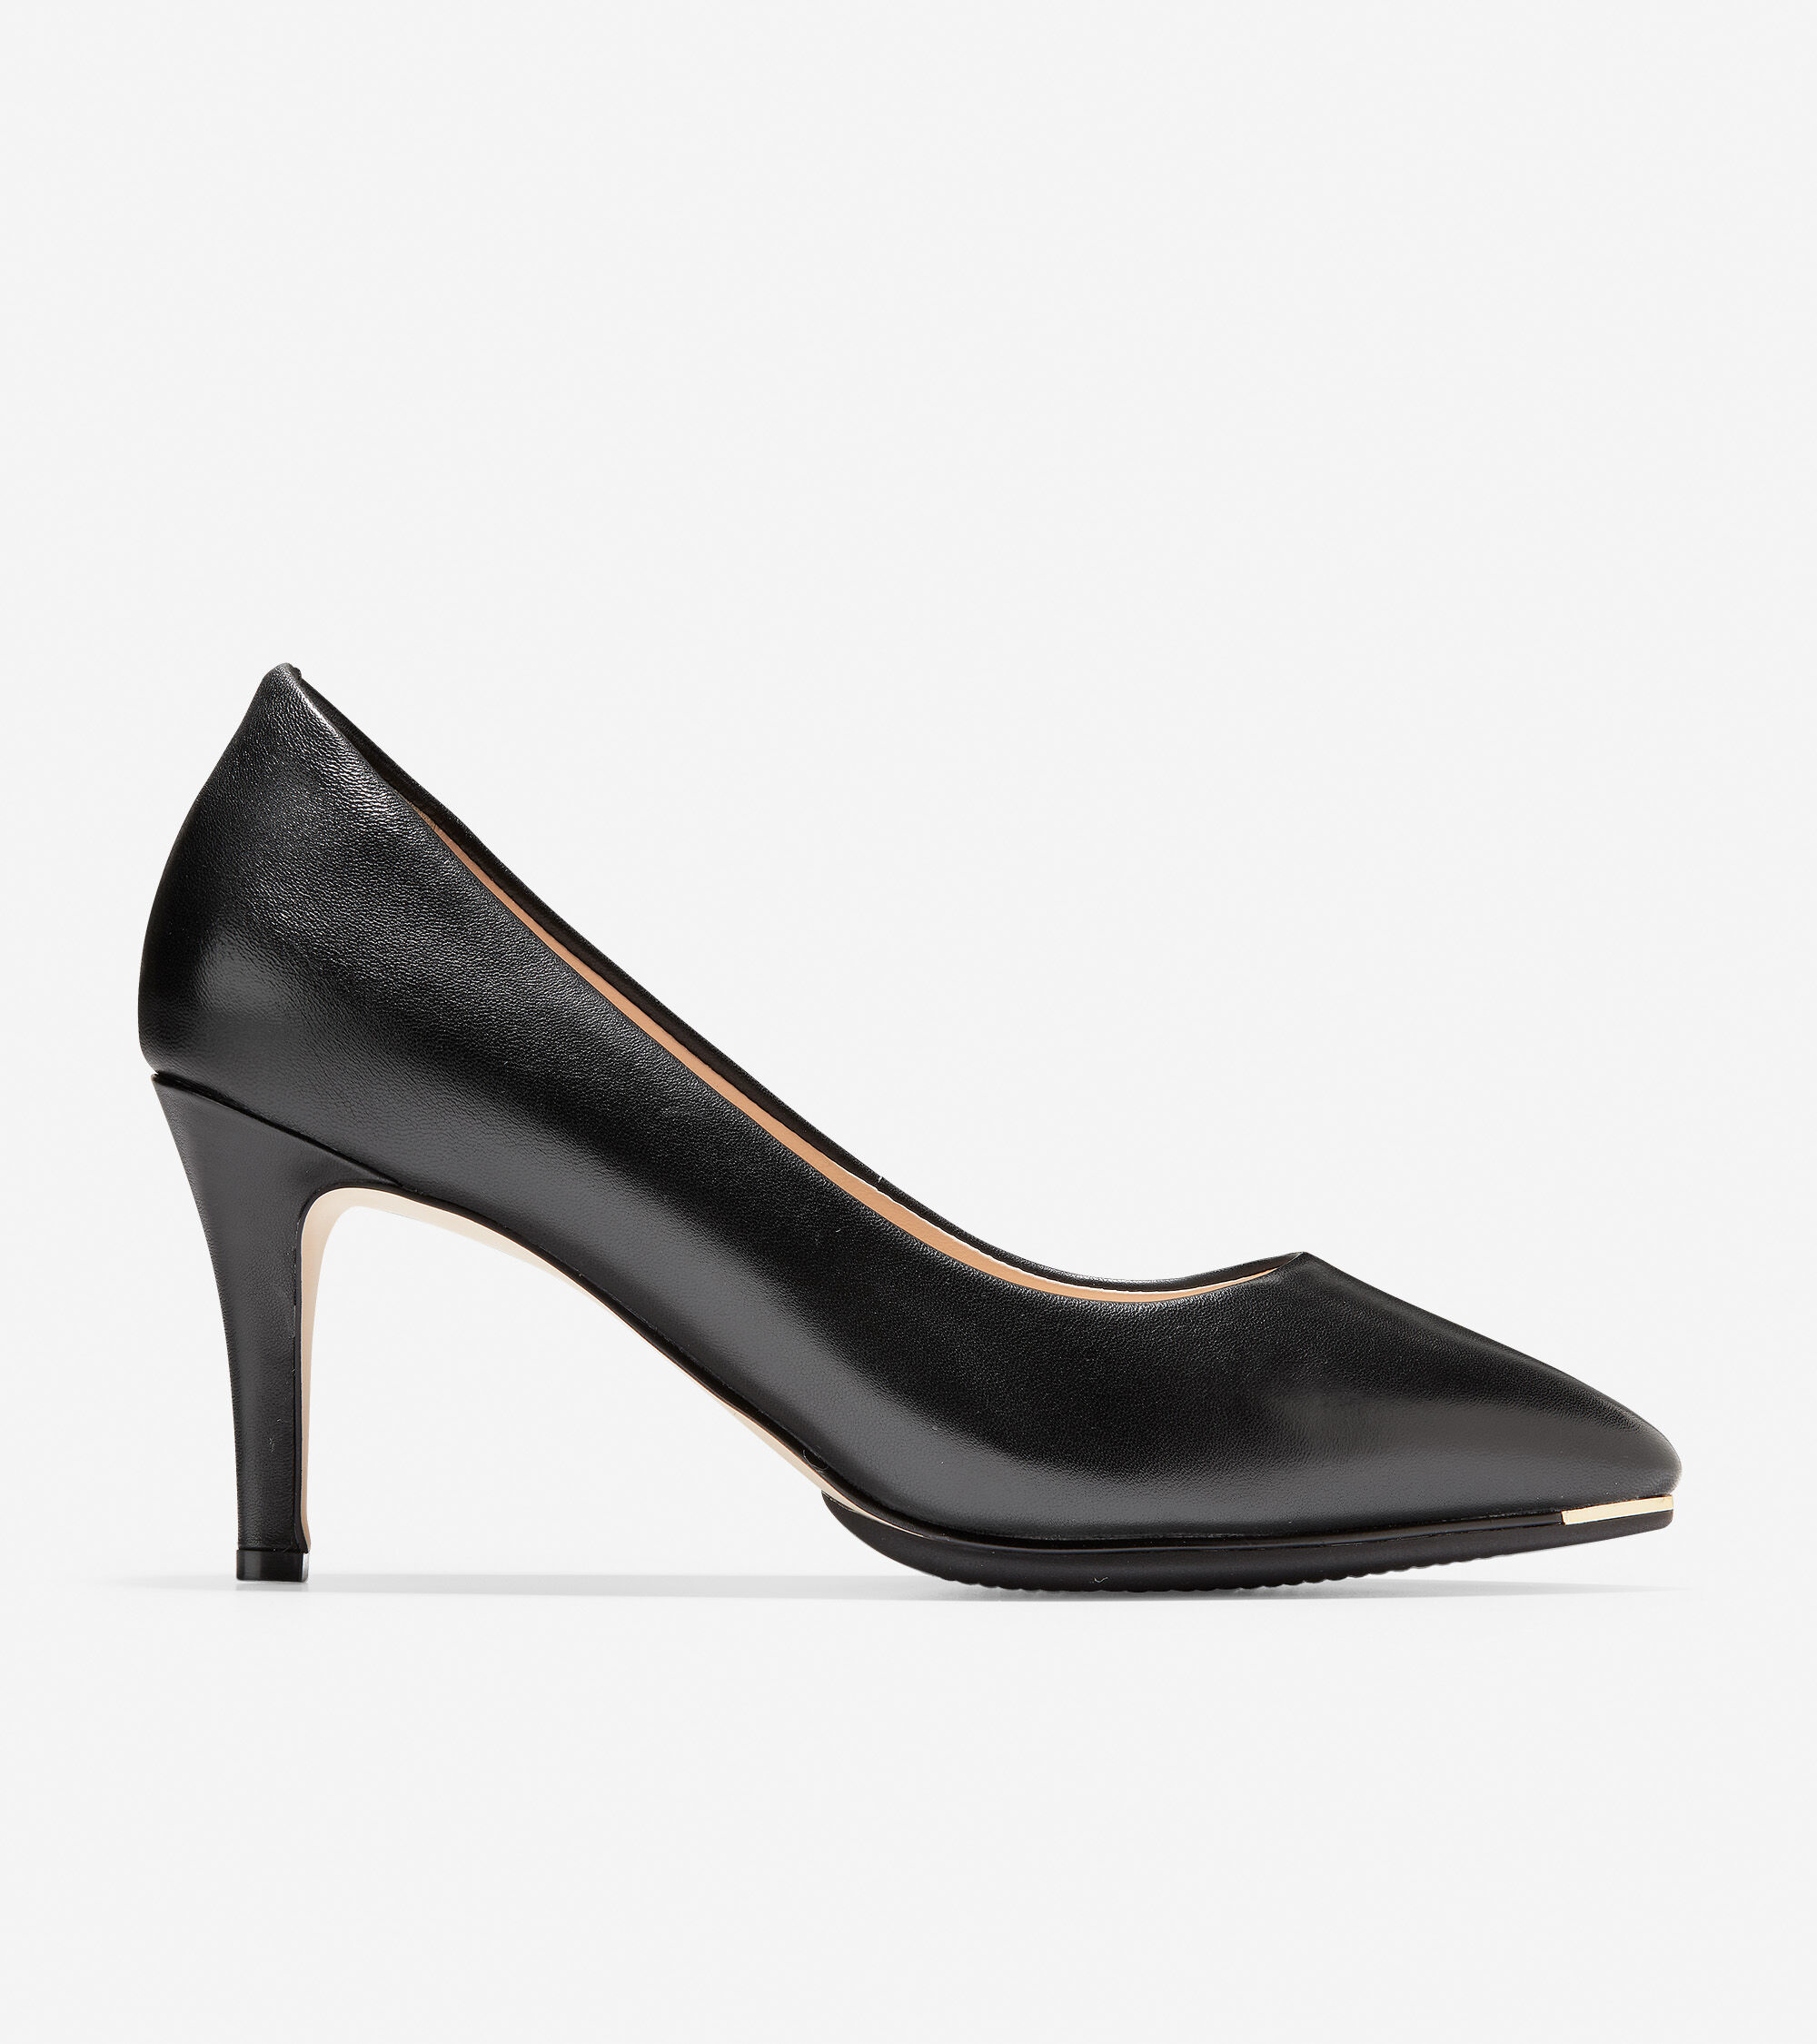 Women's Shoes | Boots, Sneakers, Flats